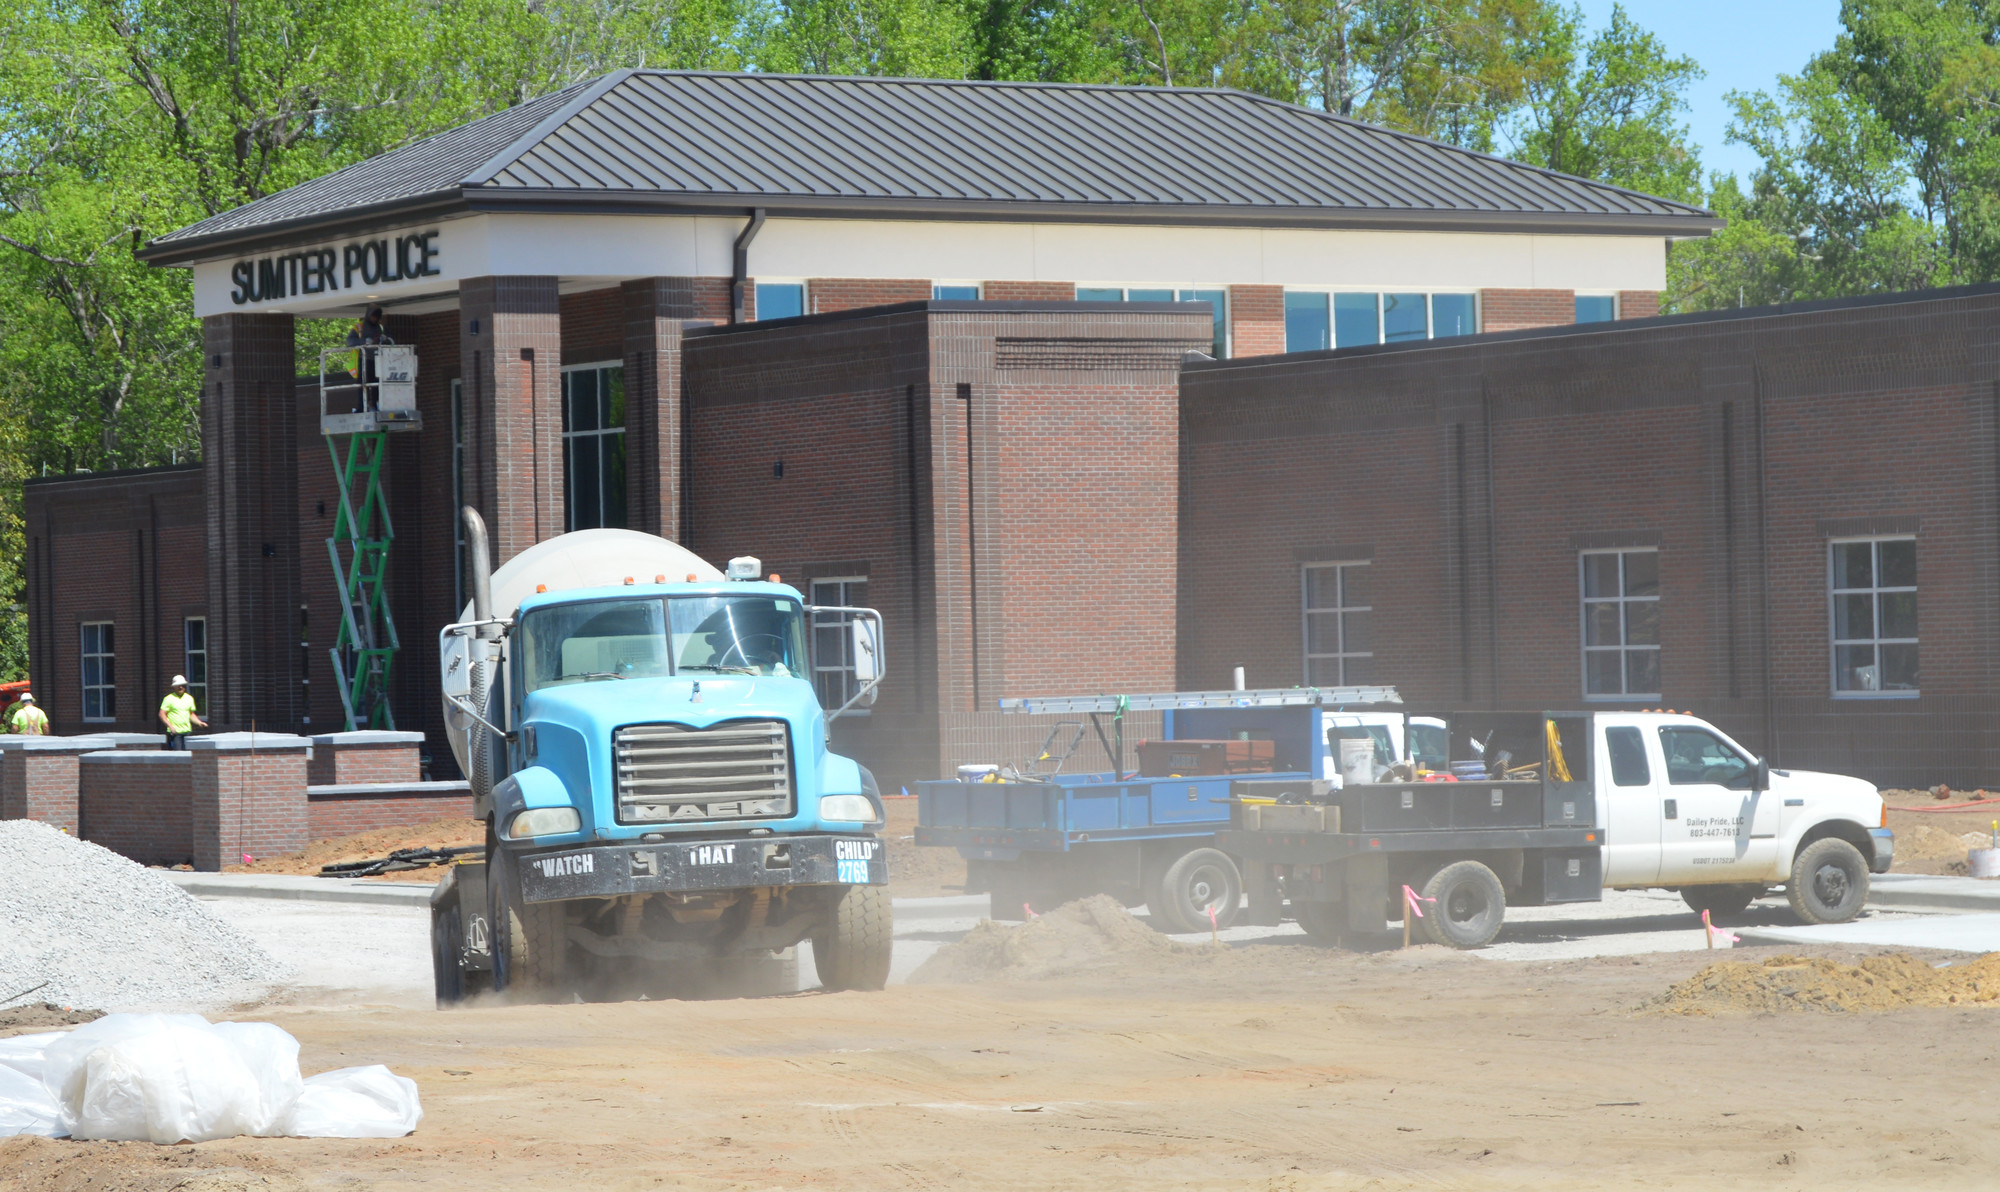 The 2014 Capital Penny Sales Tax project will include 36,000 square feet for Sumter Police Department and more than 21,000 square